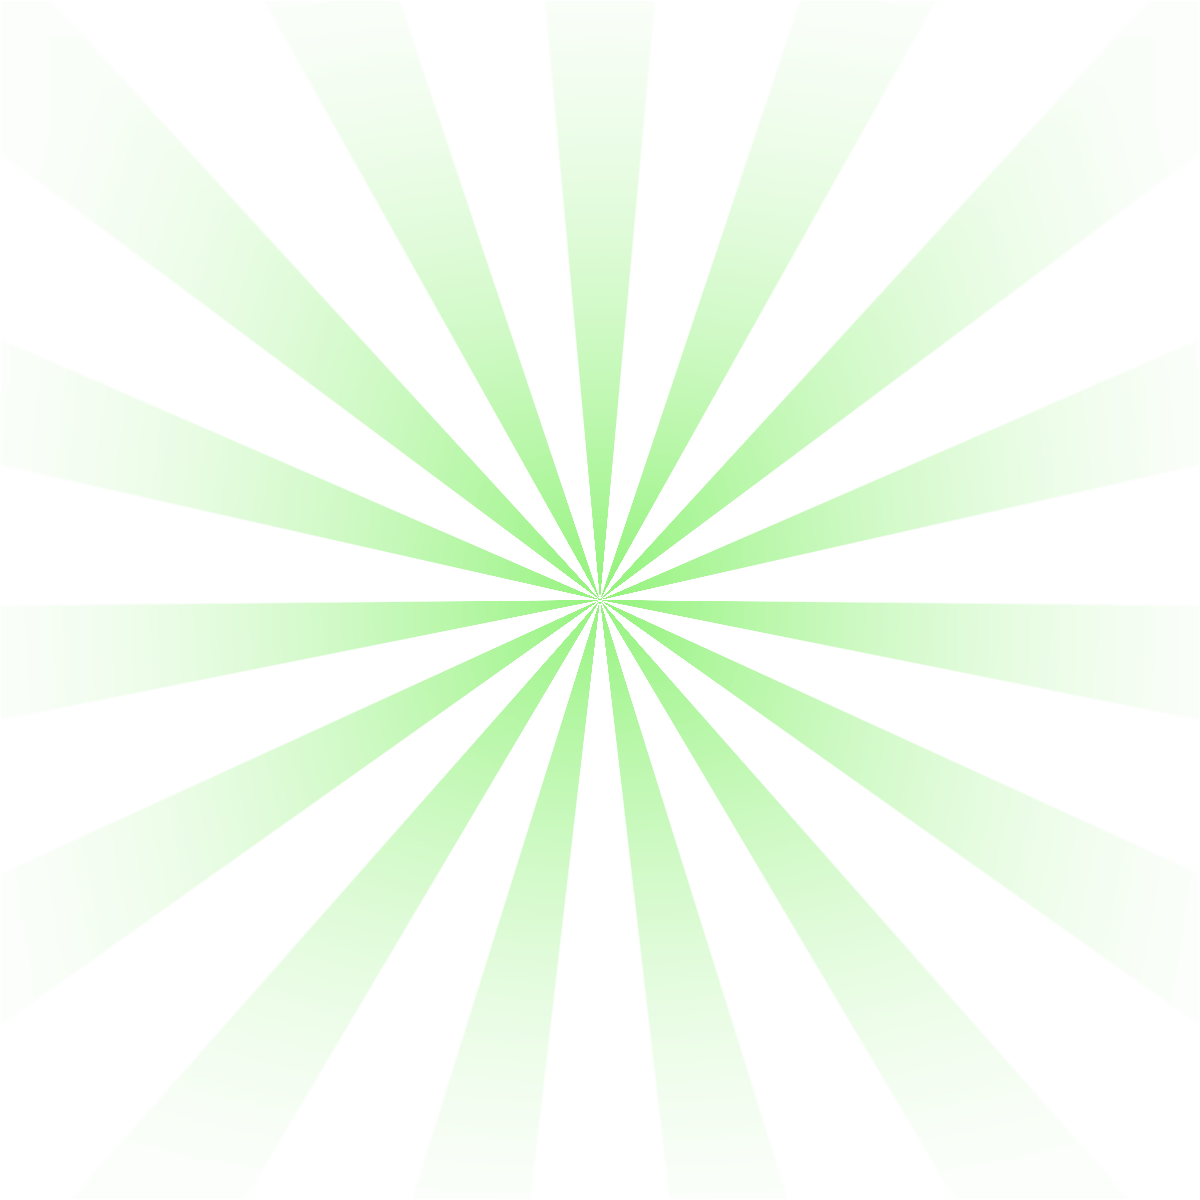 transparent starburst green.png